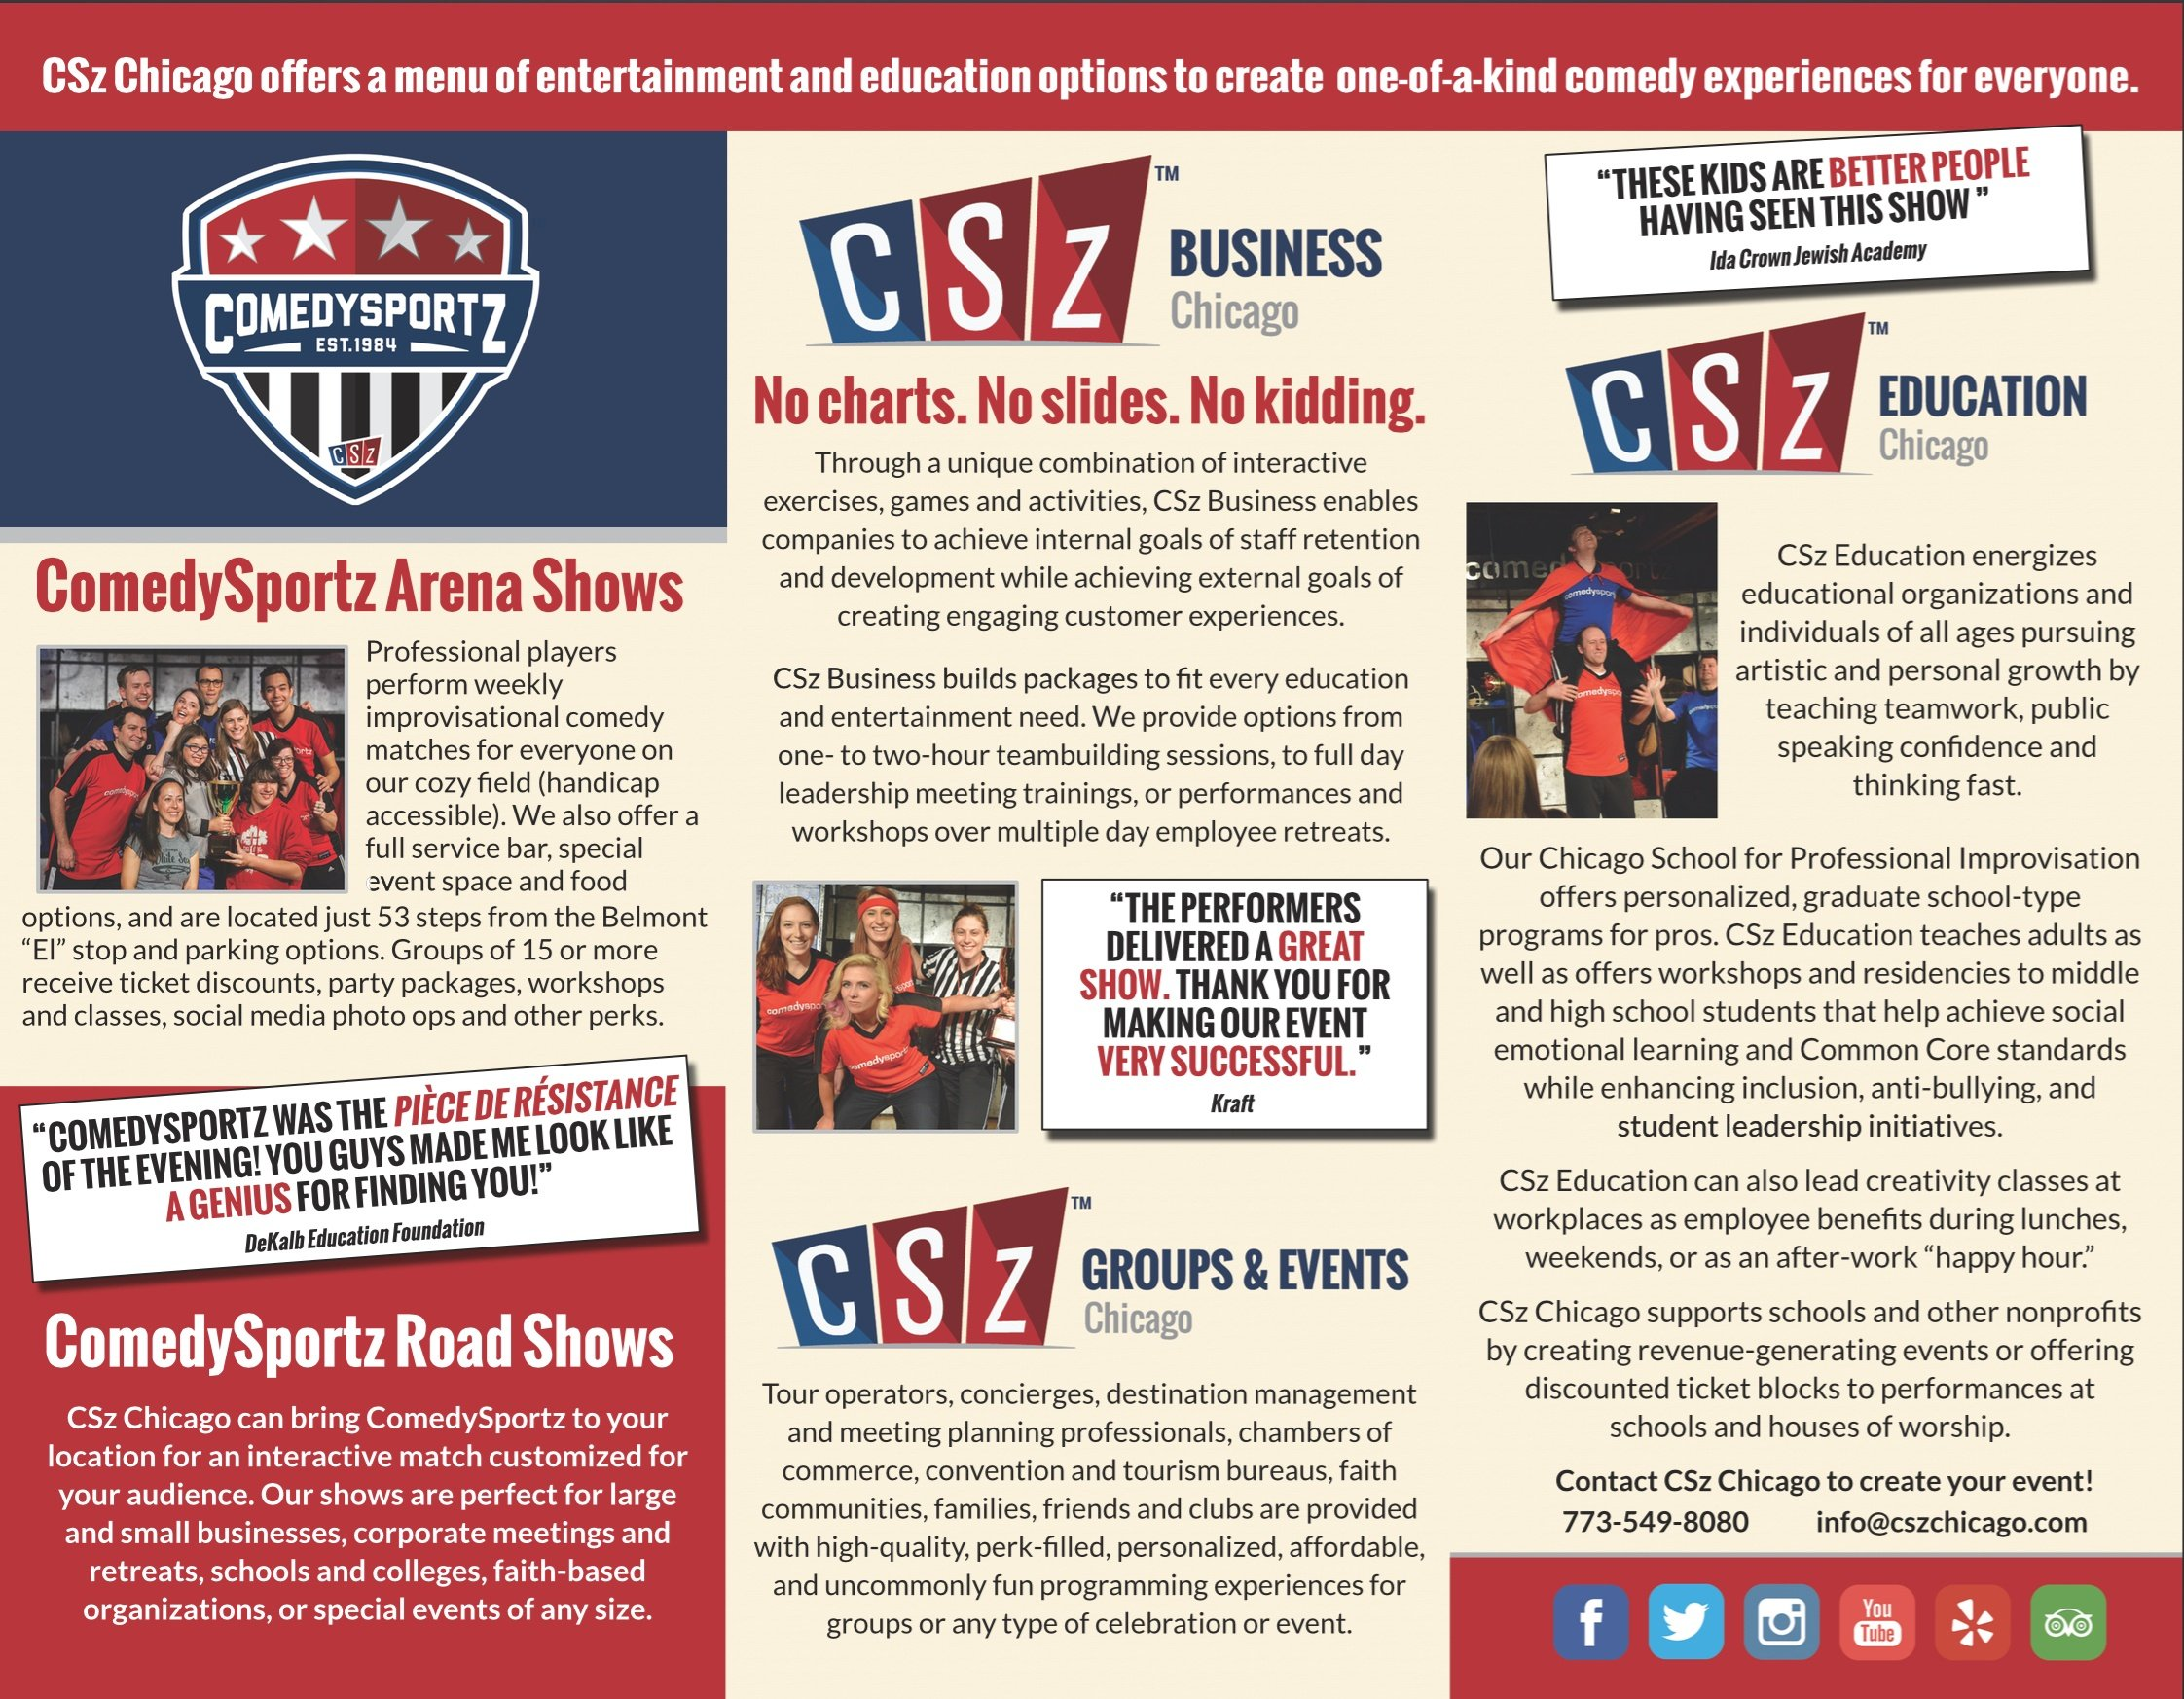 https://0201.nccdn.net/1_2/000/000/093/ea0/CSz-Chicago-Brochure-2-2244x1746.jpg